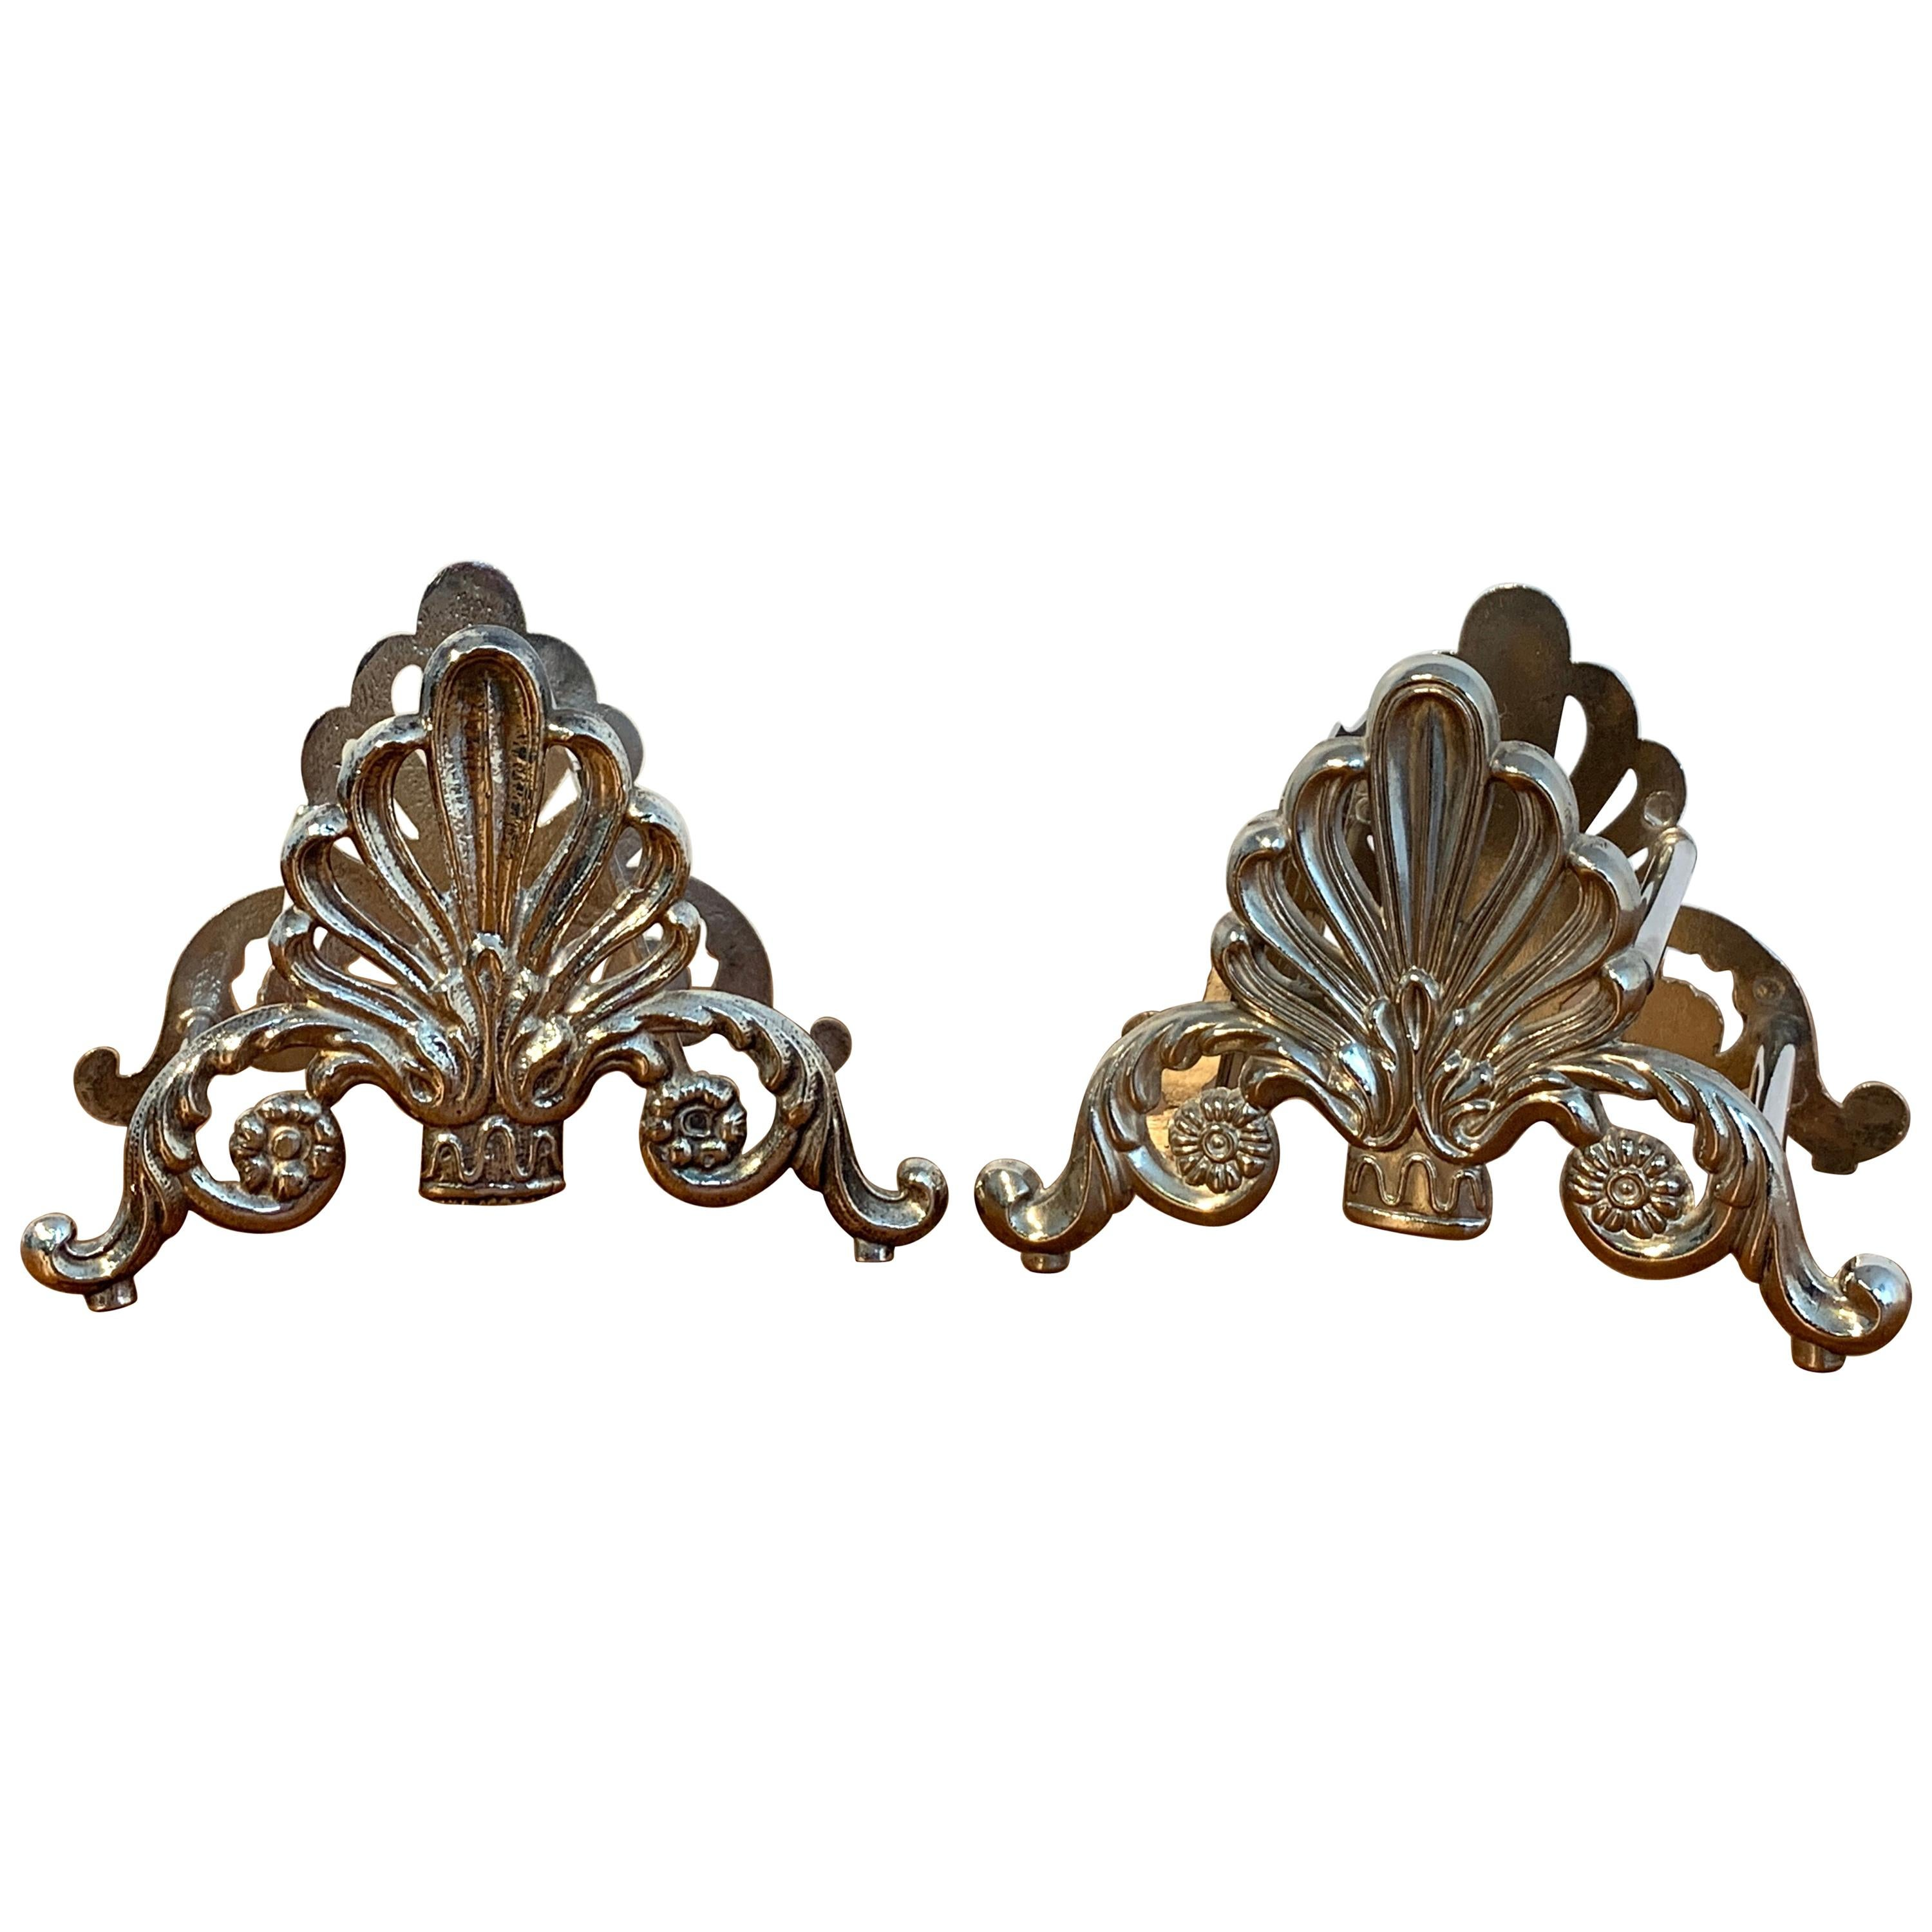 Pair of French Silver Plated Neoclassical Knife Rests